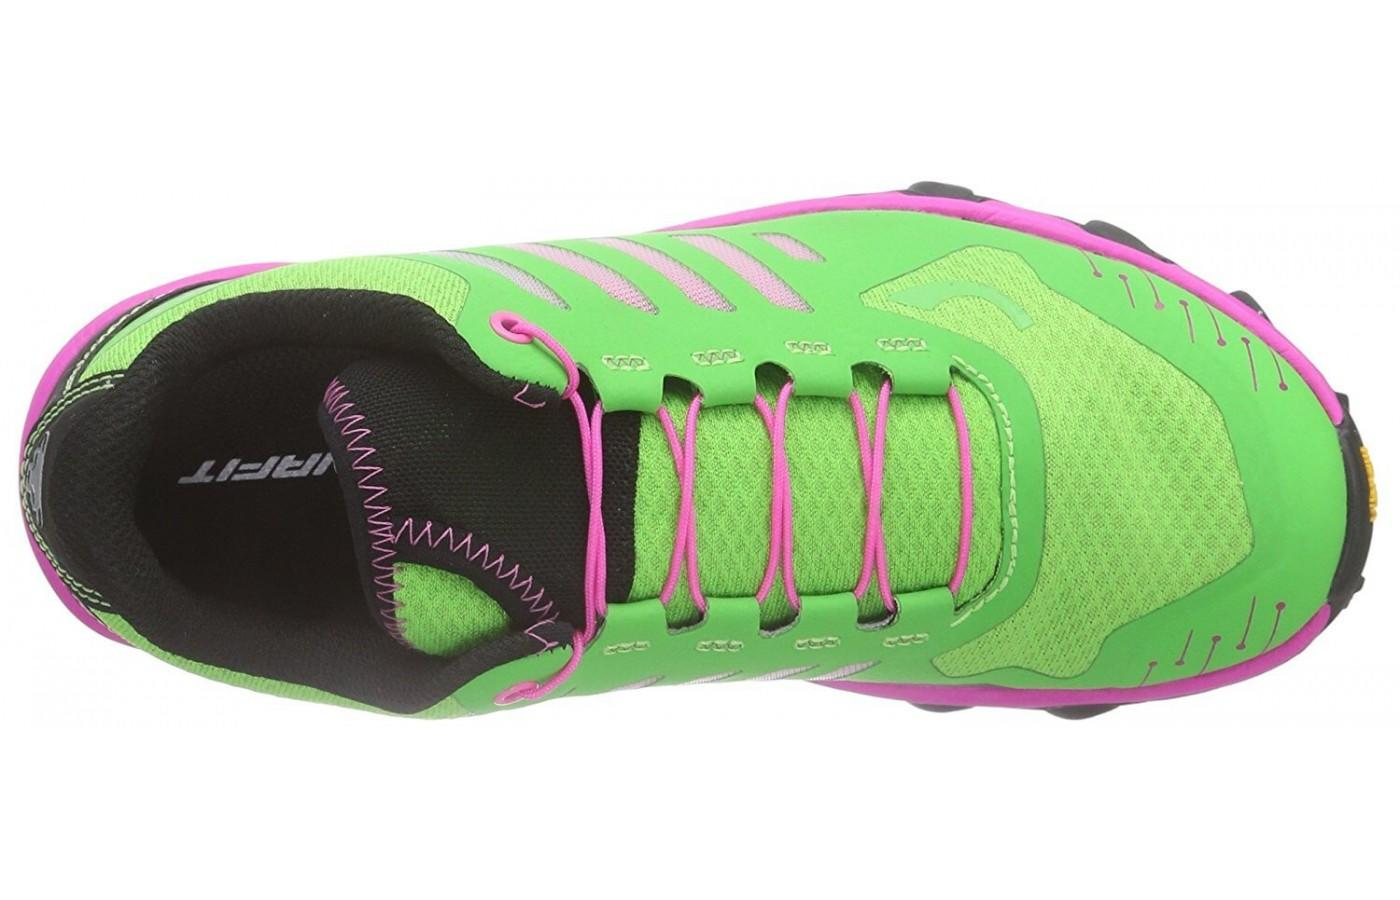 The upper of the Dynafit Feline Vertical Pro has mesh so the foot stays cool and dry even during races